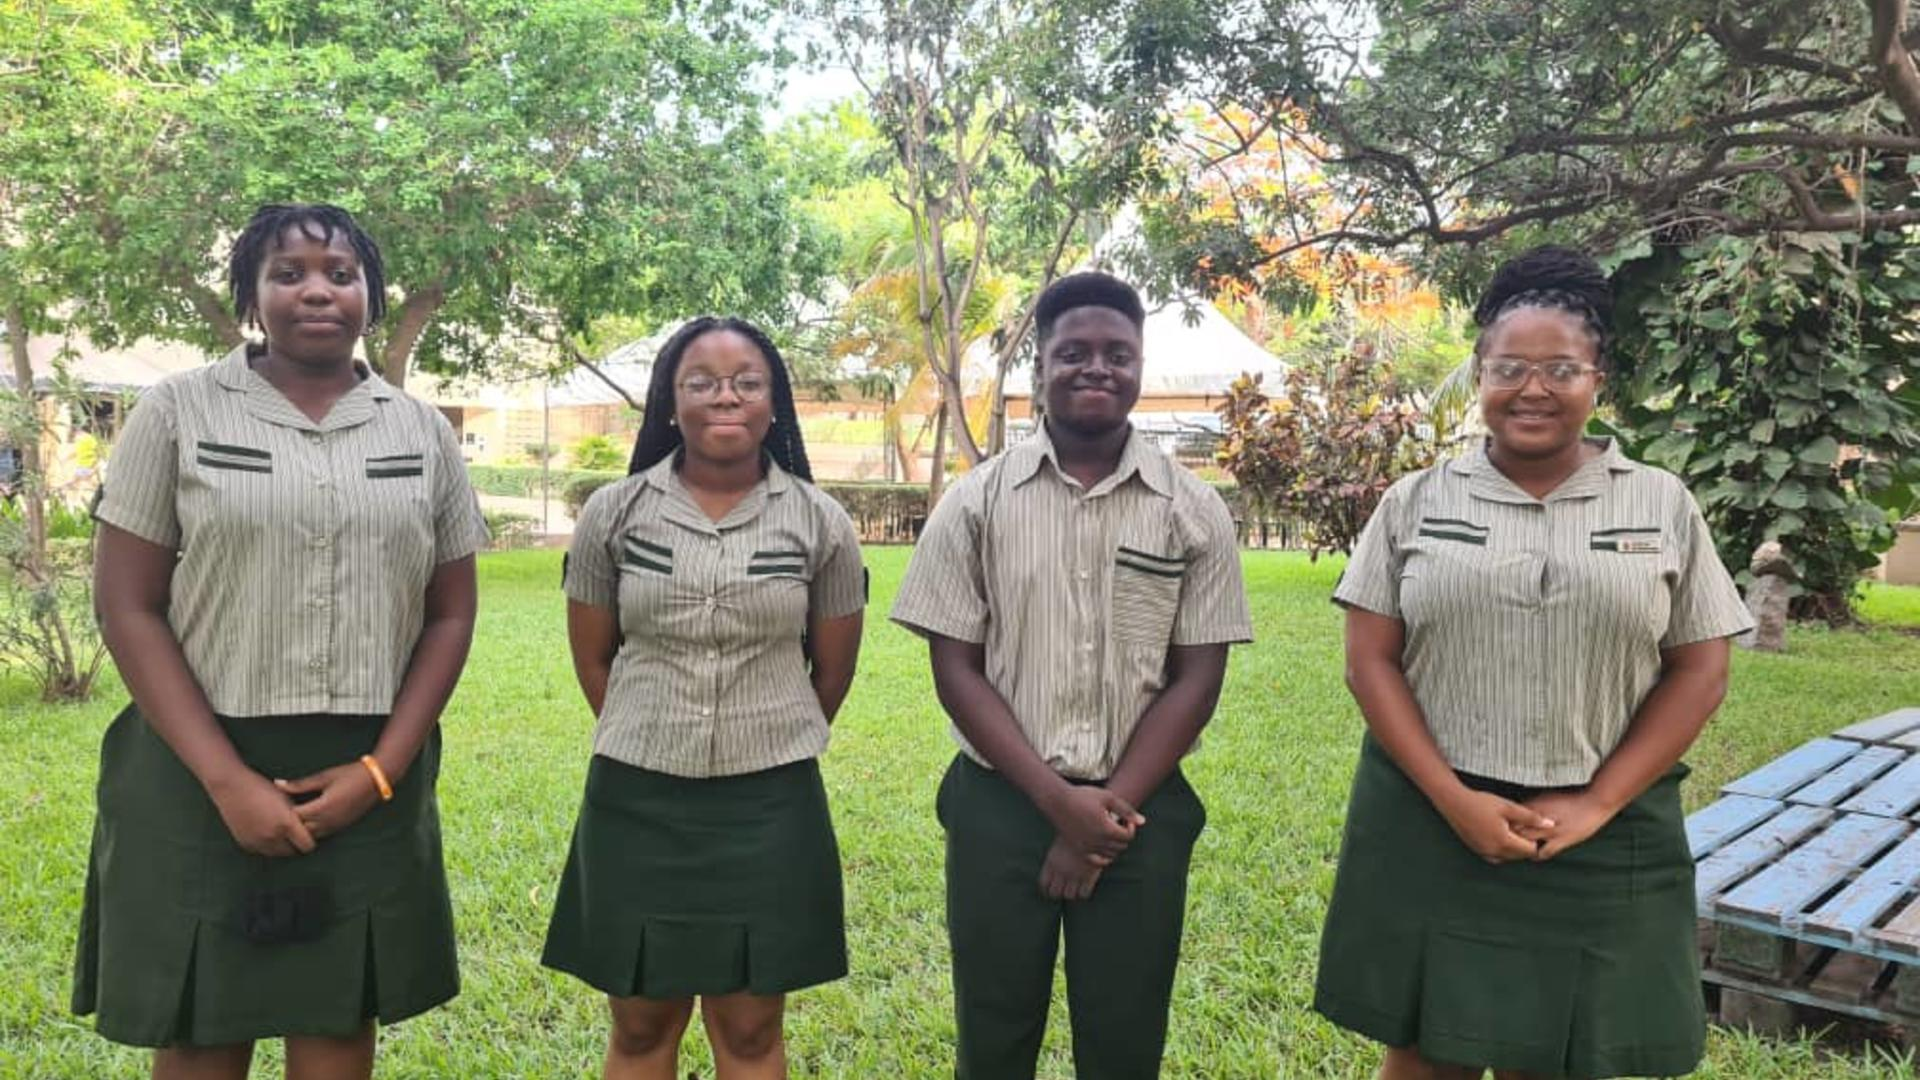 Team members from TIS standing in brown uniform smiling with trees and grass in background